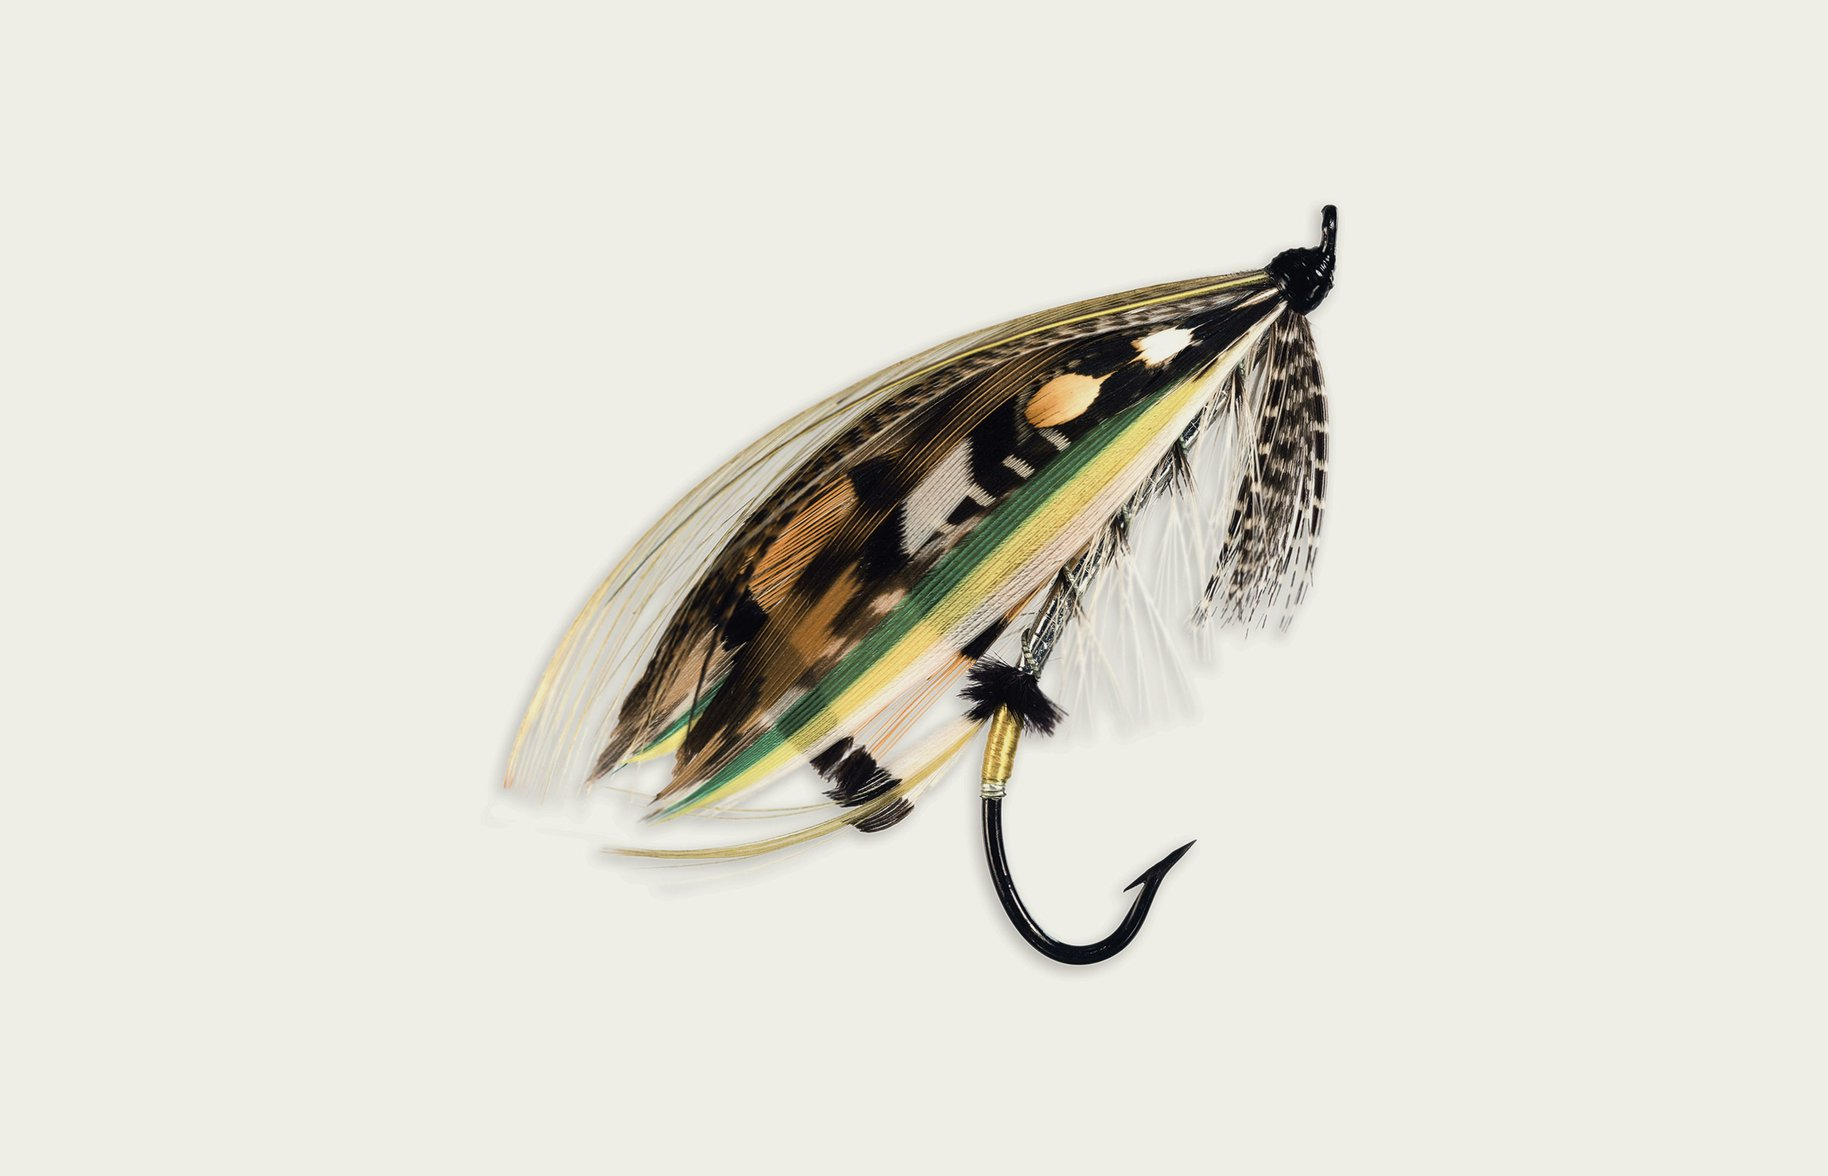 Craigs Investment Partners fly fishing hook photography